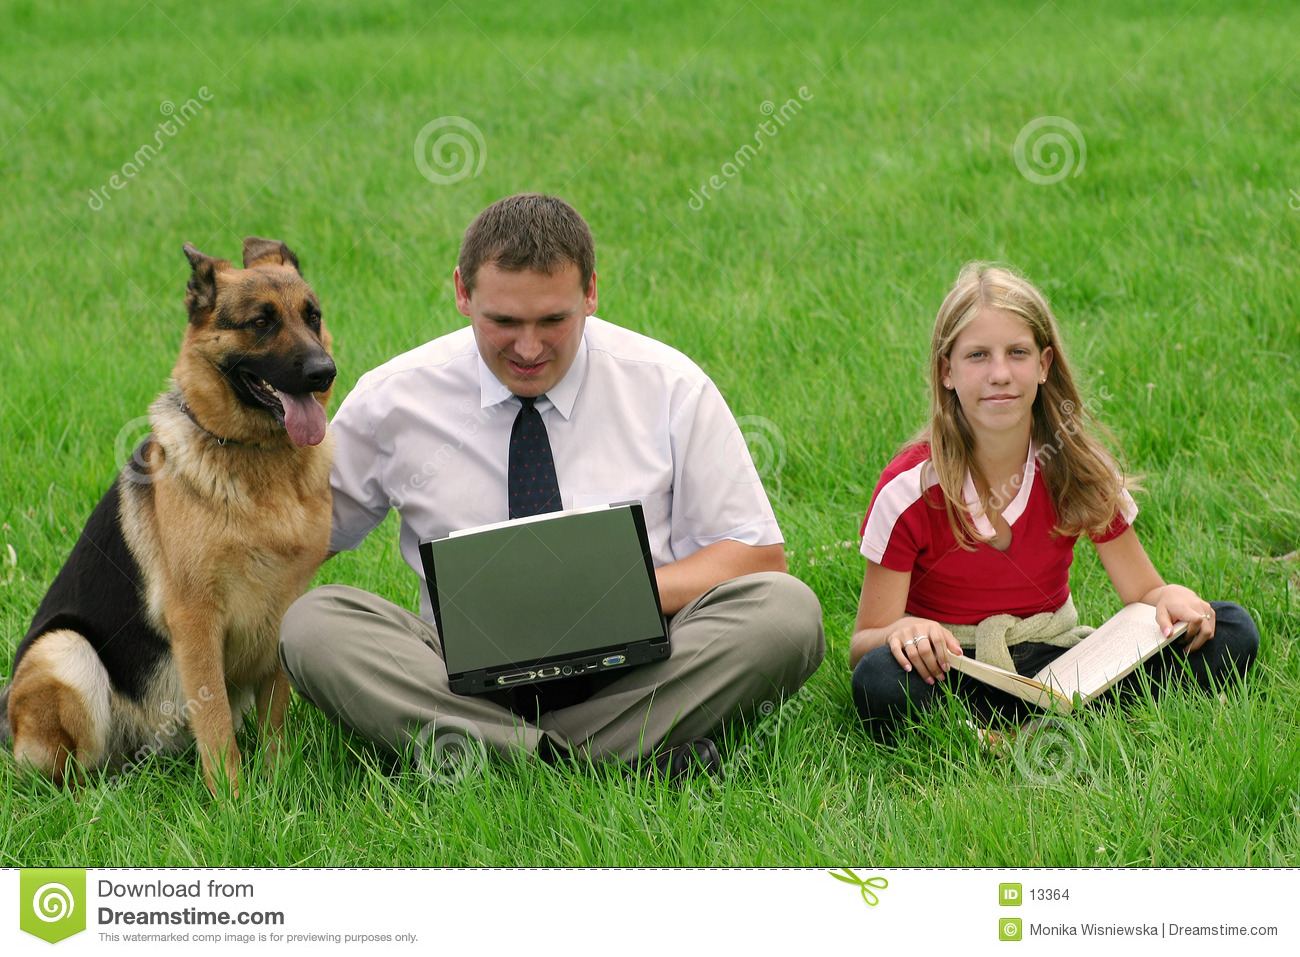 Man, girl and dog sitting